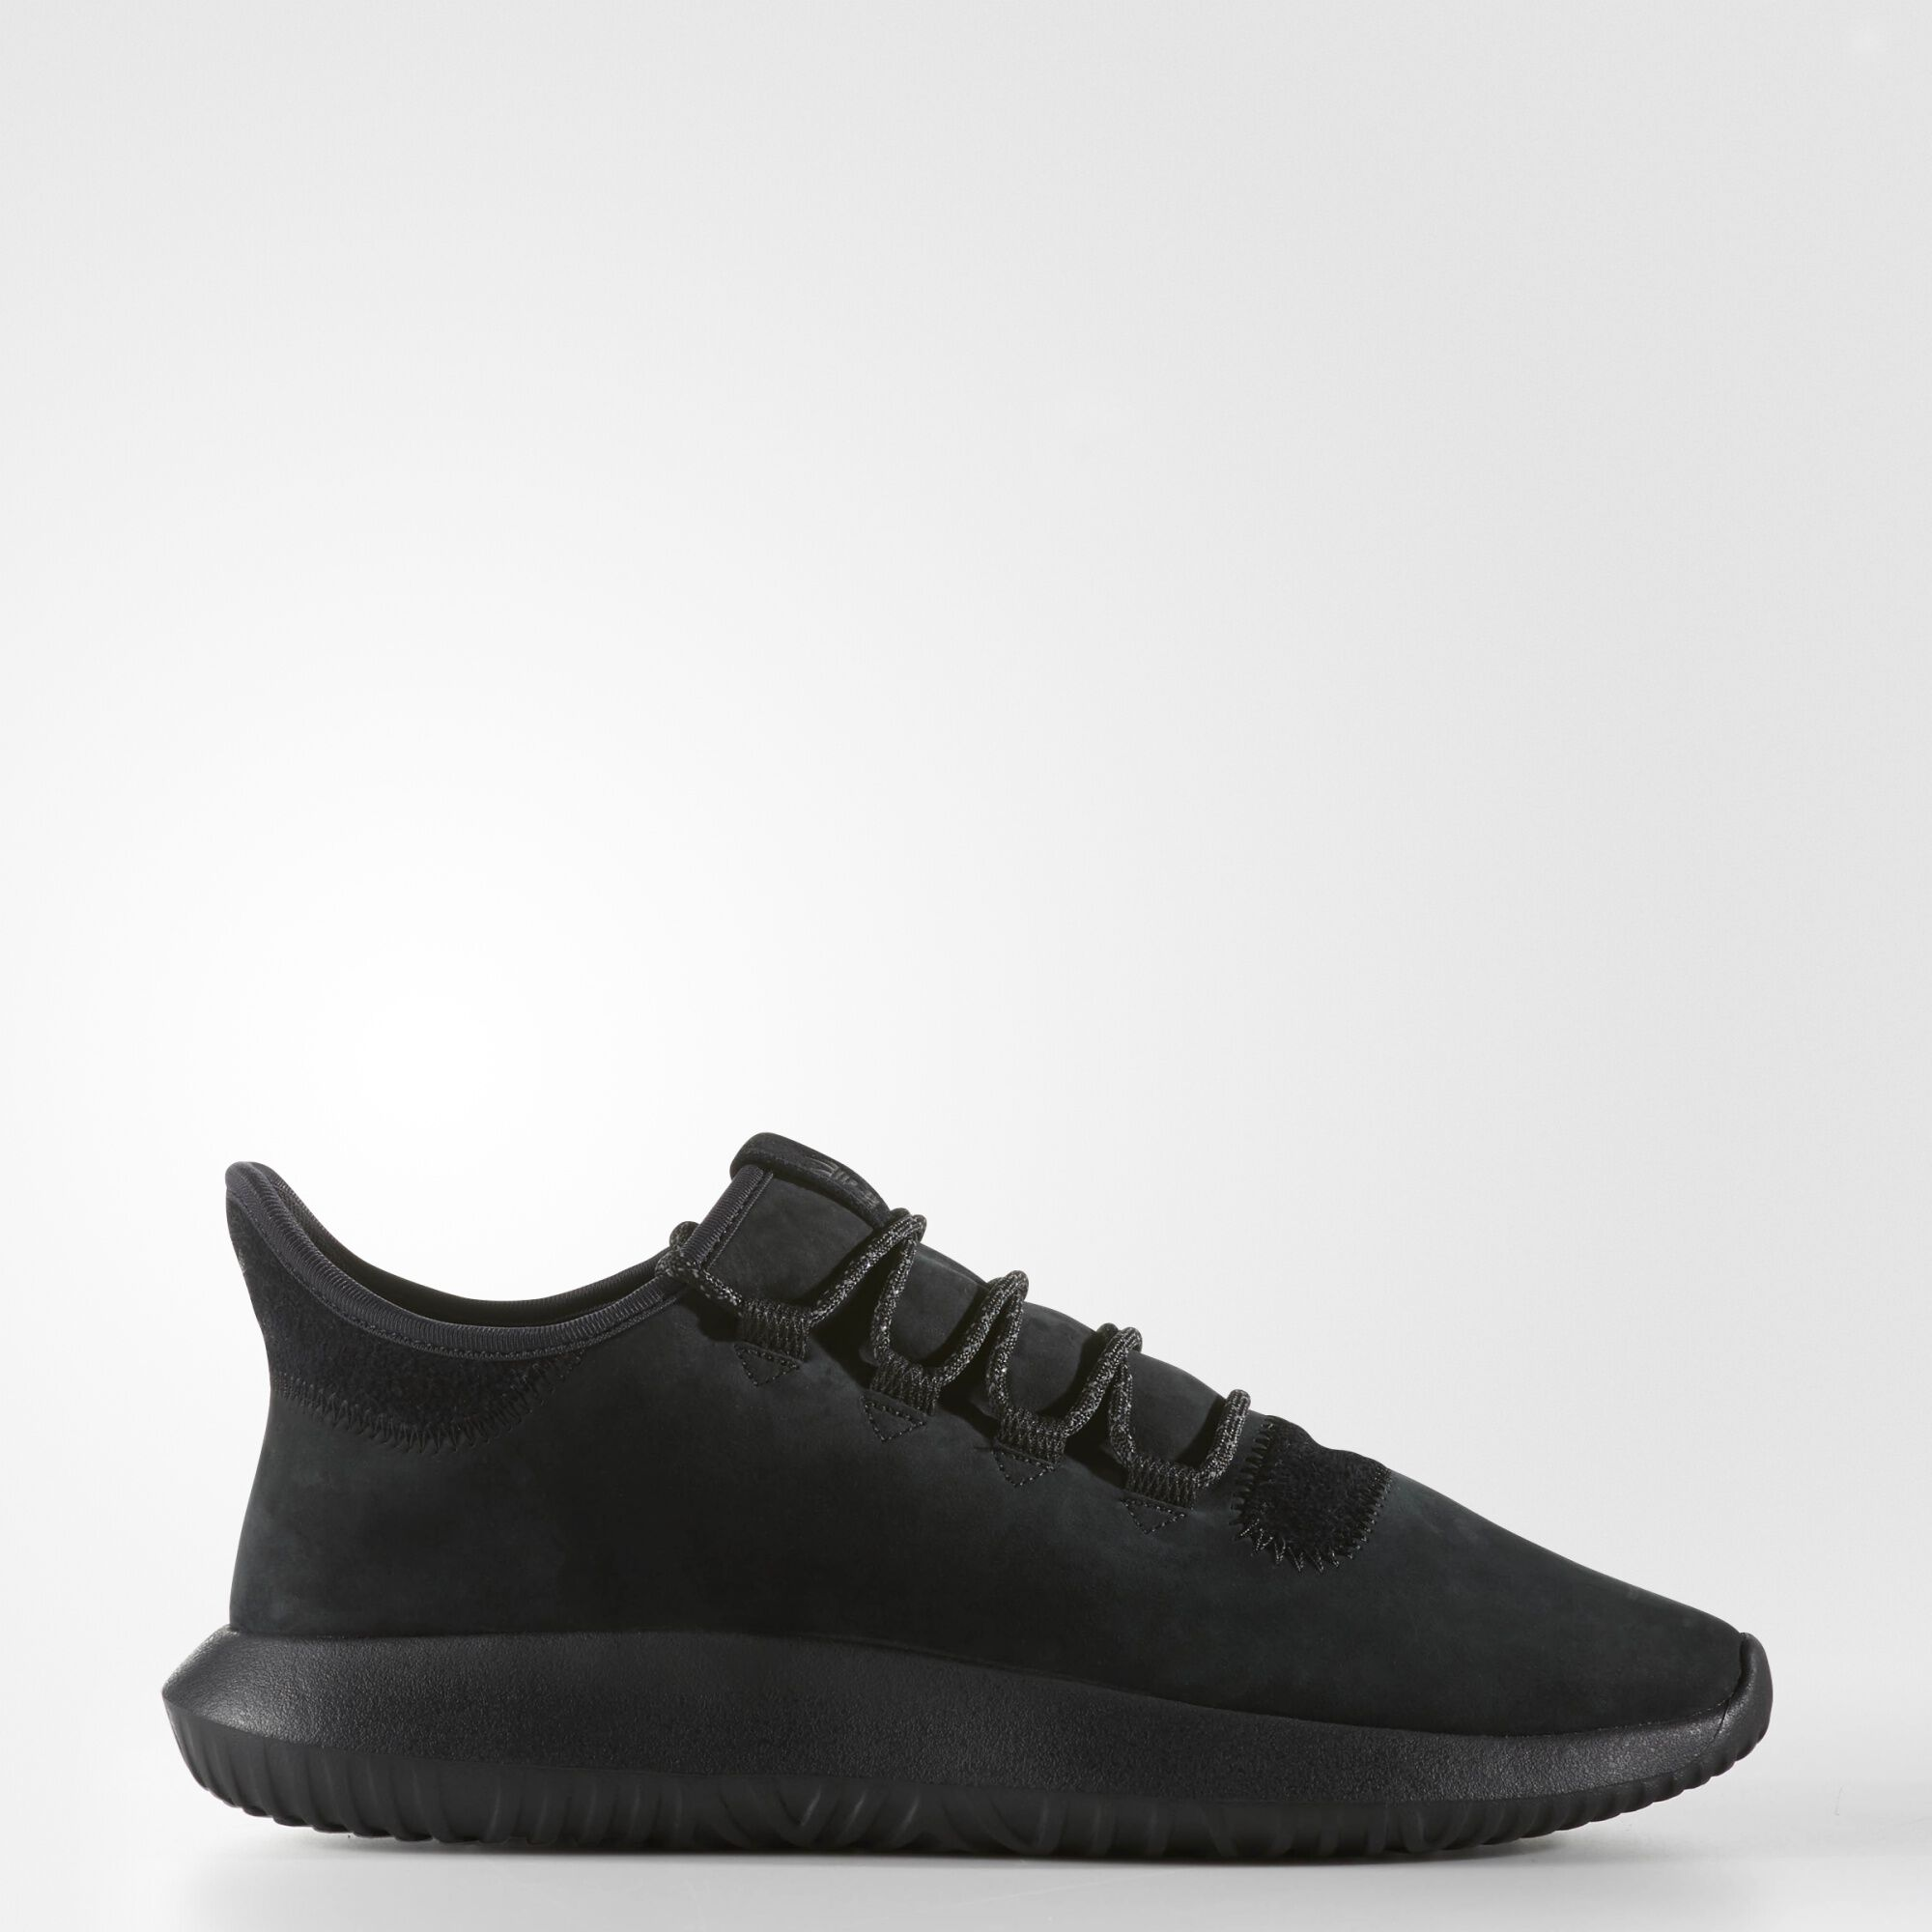 Amazon: Customer Reviews: adidas Originals Women 's Tubular